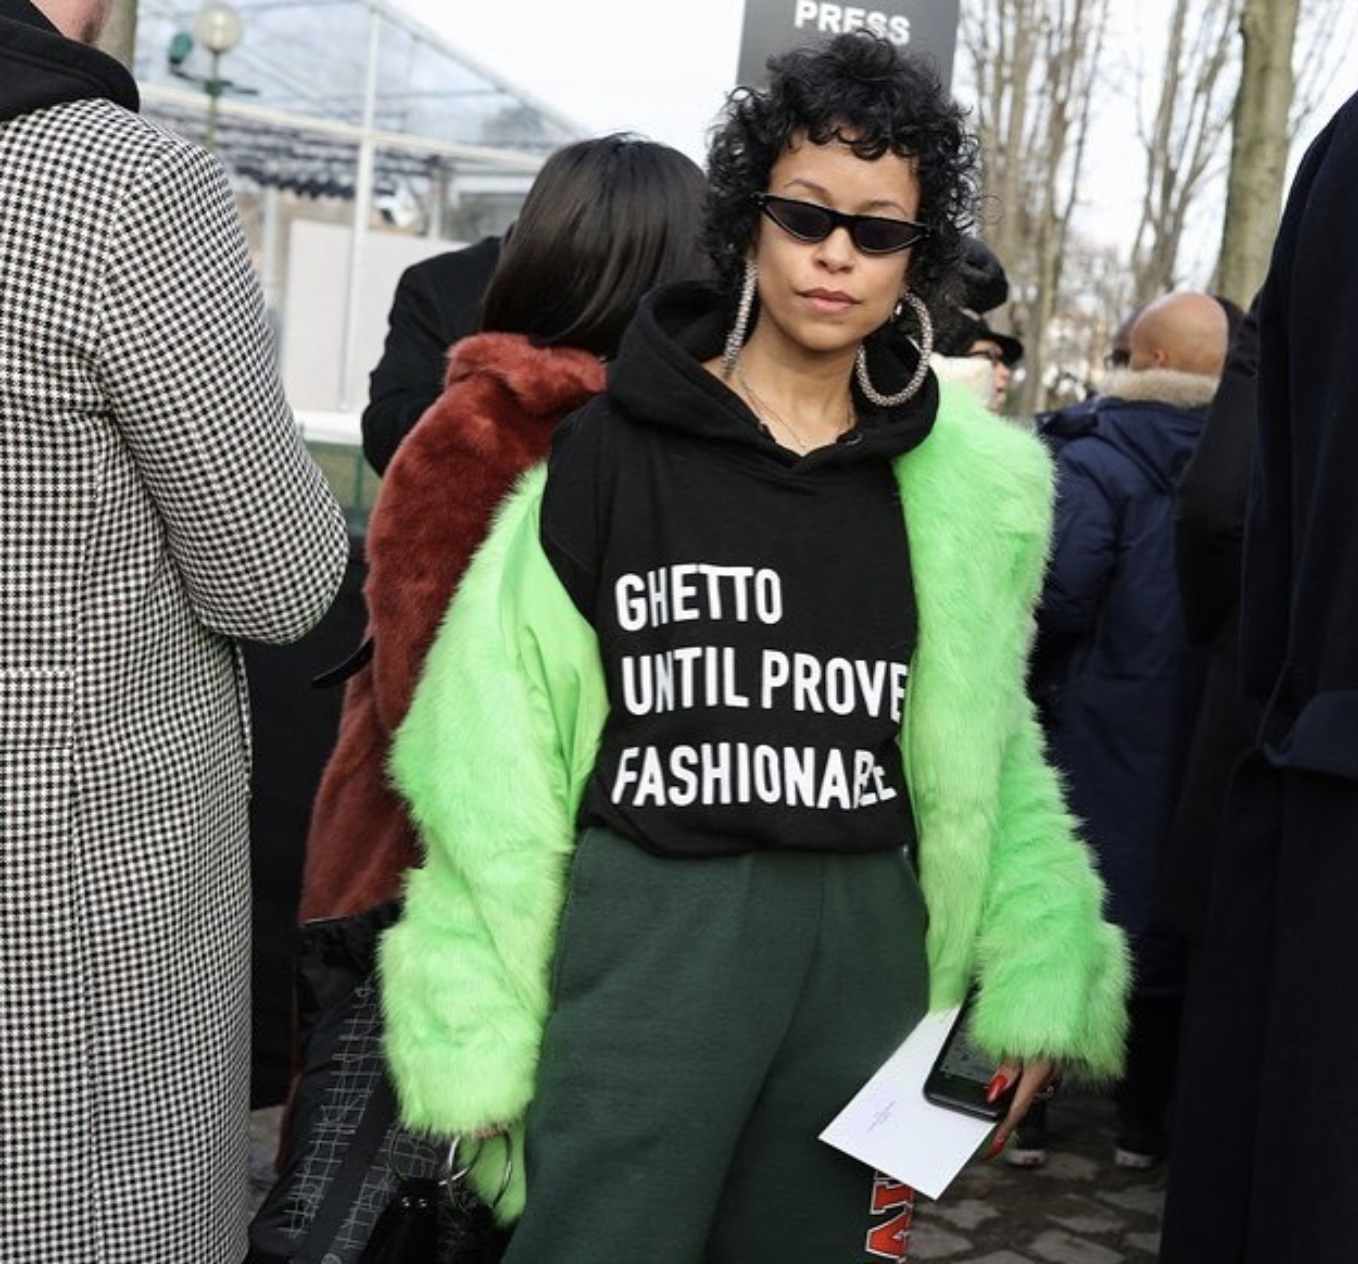 How 'Ghetto Until Proven Fashionable' Shirt Designer Nareasha Willis Fights Cultural Appropriation